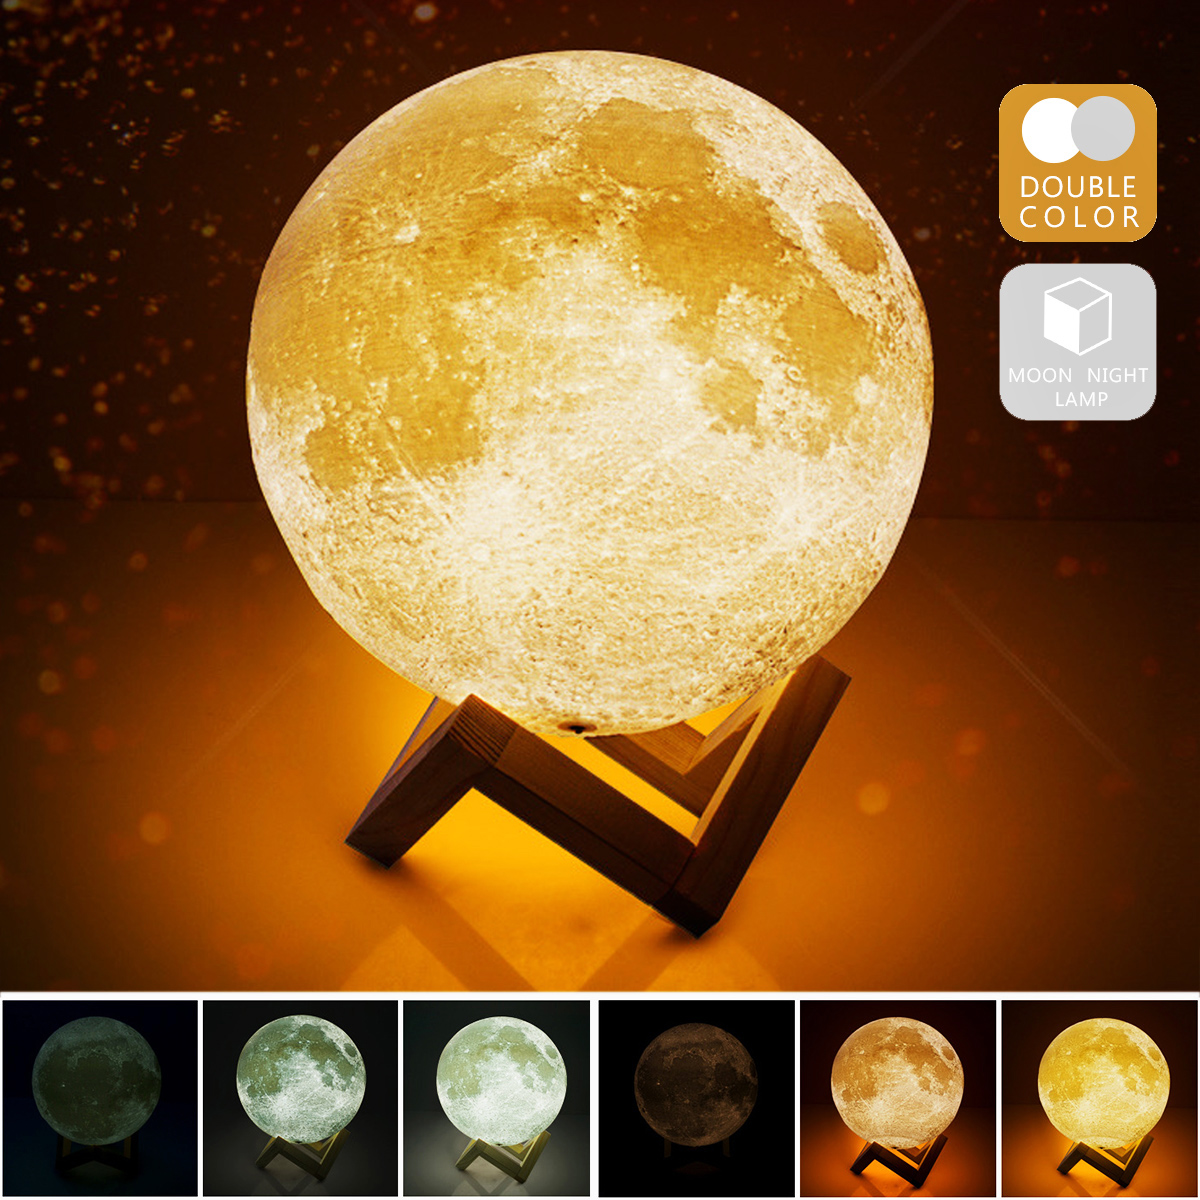 New 3D Print Moon Lamp USB Rechargeable 2 Color Touch Control Novelty Lighting Adjustable Moon Lamp Home Decoration